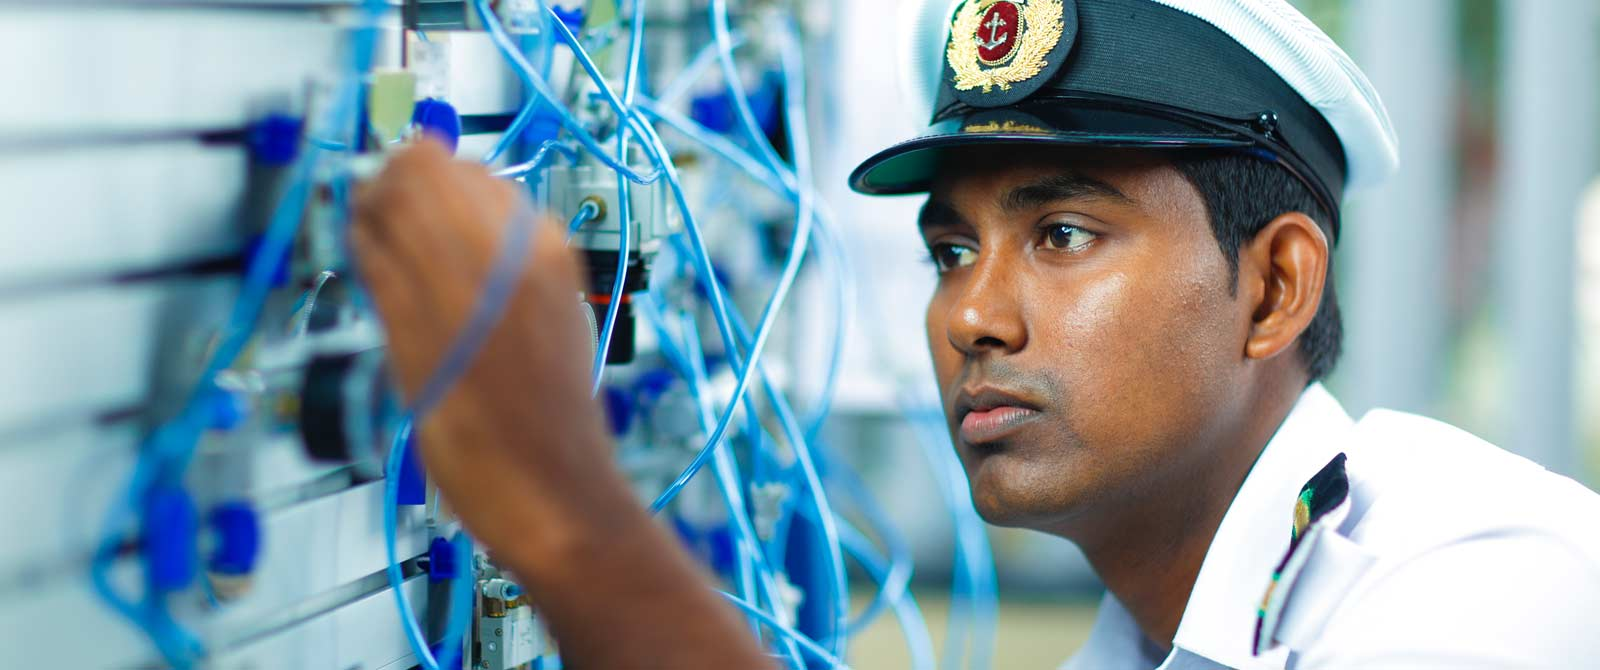 why did you chose marine engineering as a course Industrial engineering gives you the foundation for work in this domain take extra courses and certifications, and you could eventually become a data scientist 4.